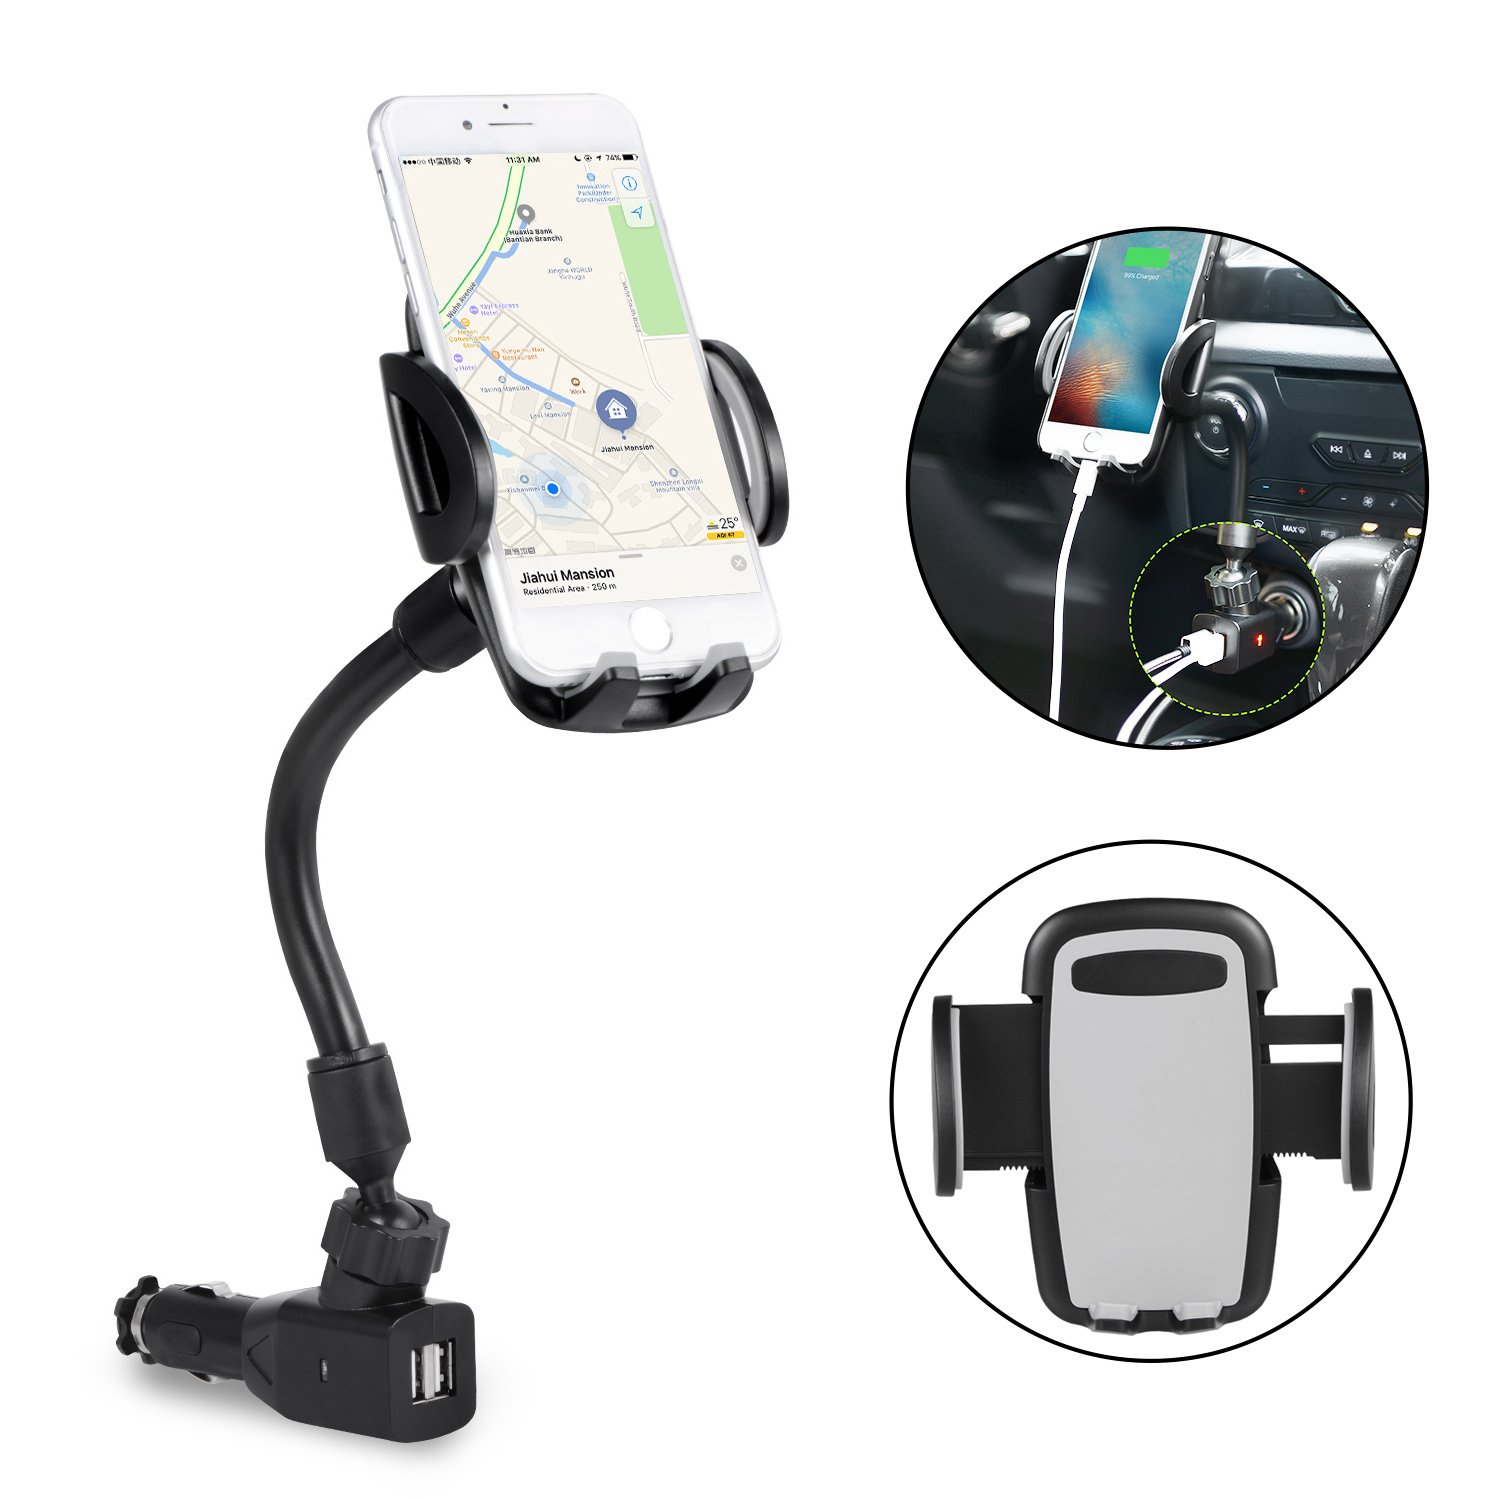 3-In-1 Cigarette Lighter Car Mount, Car Mount Charger Holder Cradle with Dual USB 2.1A Charger for iPhone X 8 8 Plus 7 7 Plus 6s 6s Plug Samsung Galaxy S9 Note 8 S8 S8 Plus S7 Edge and More